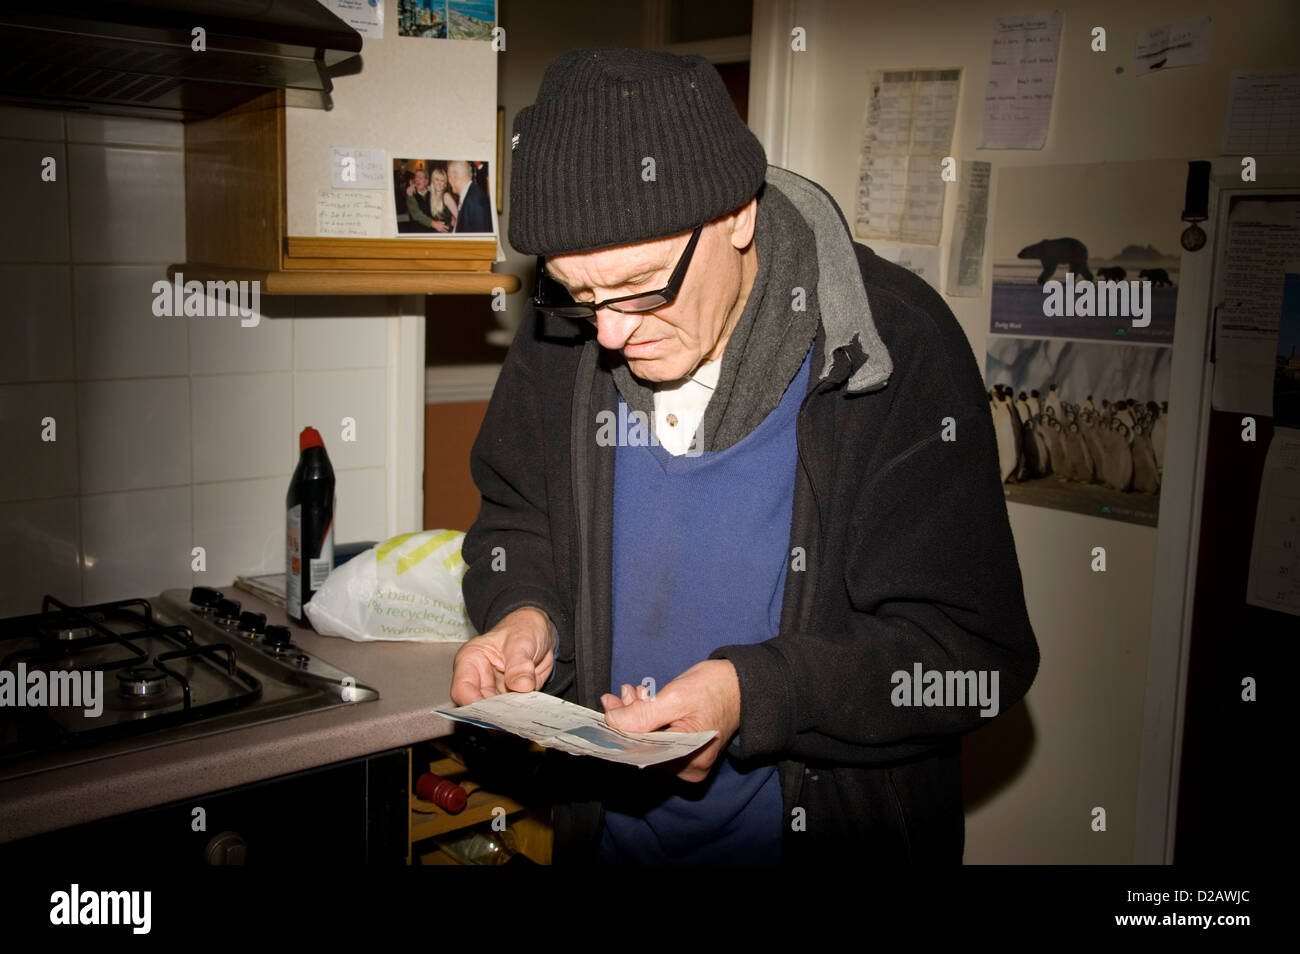 An Elderly man looking at his Building Society Book. - Stock Image